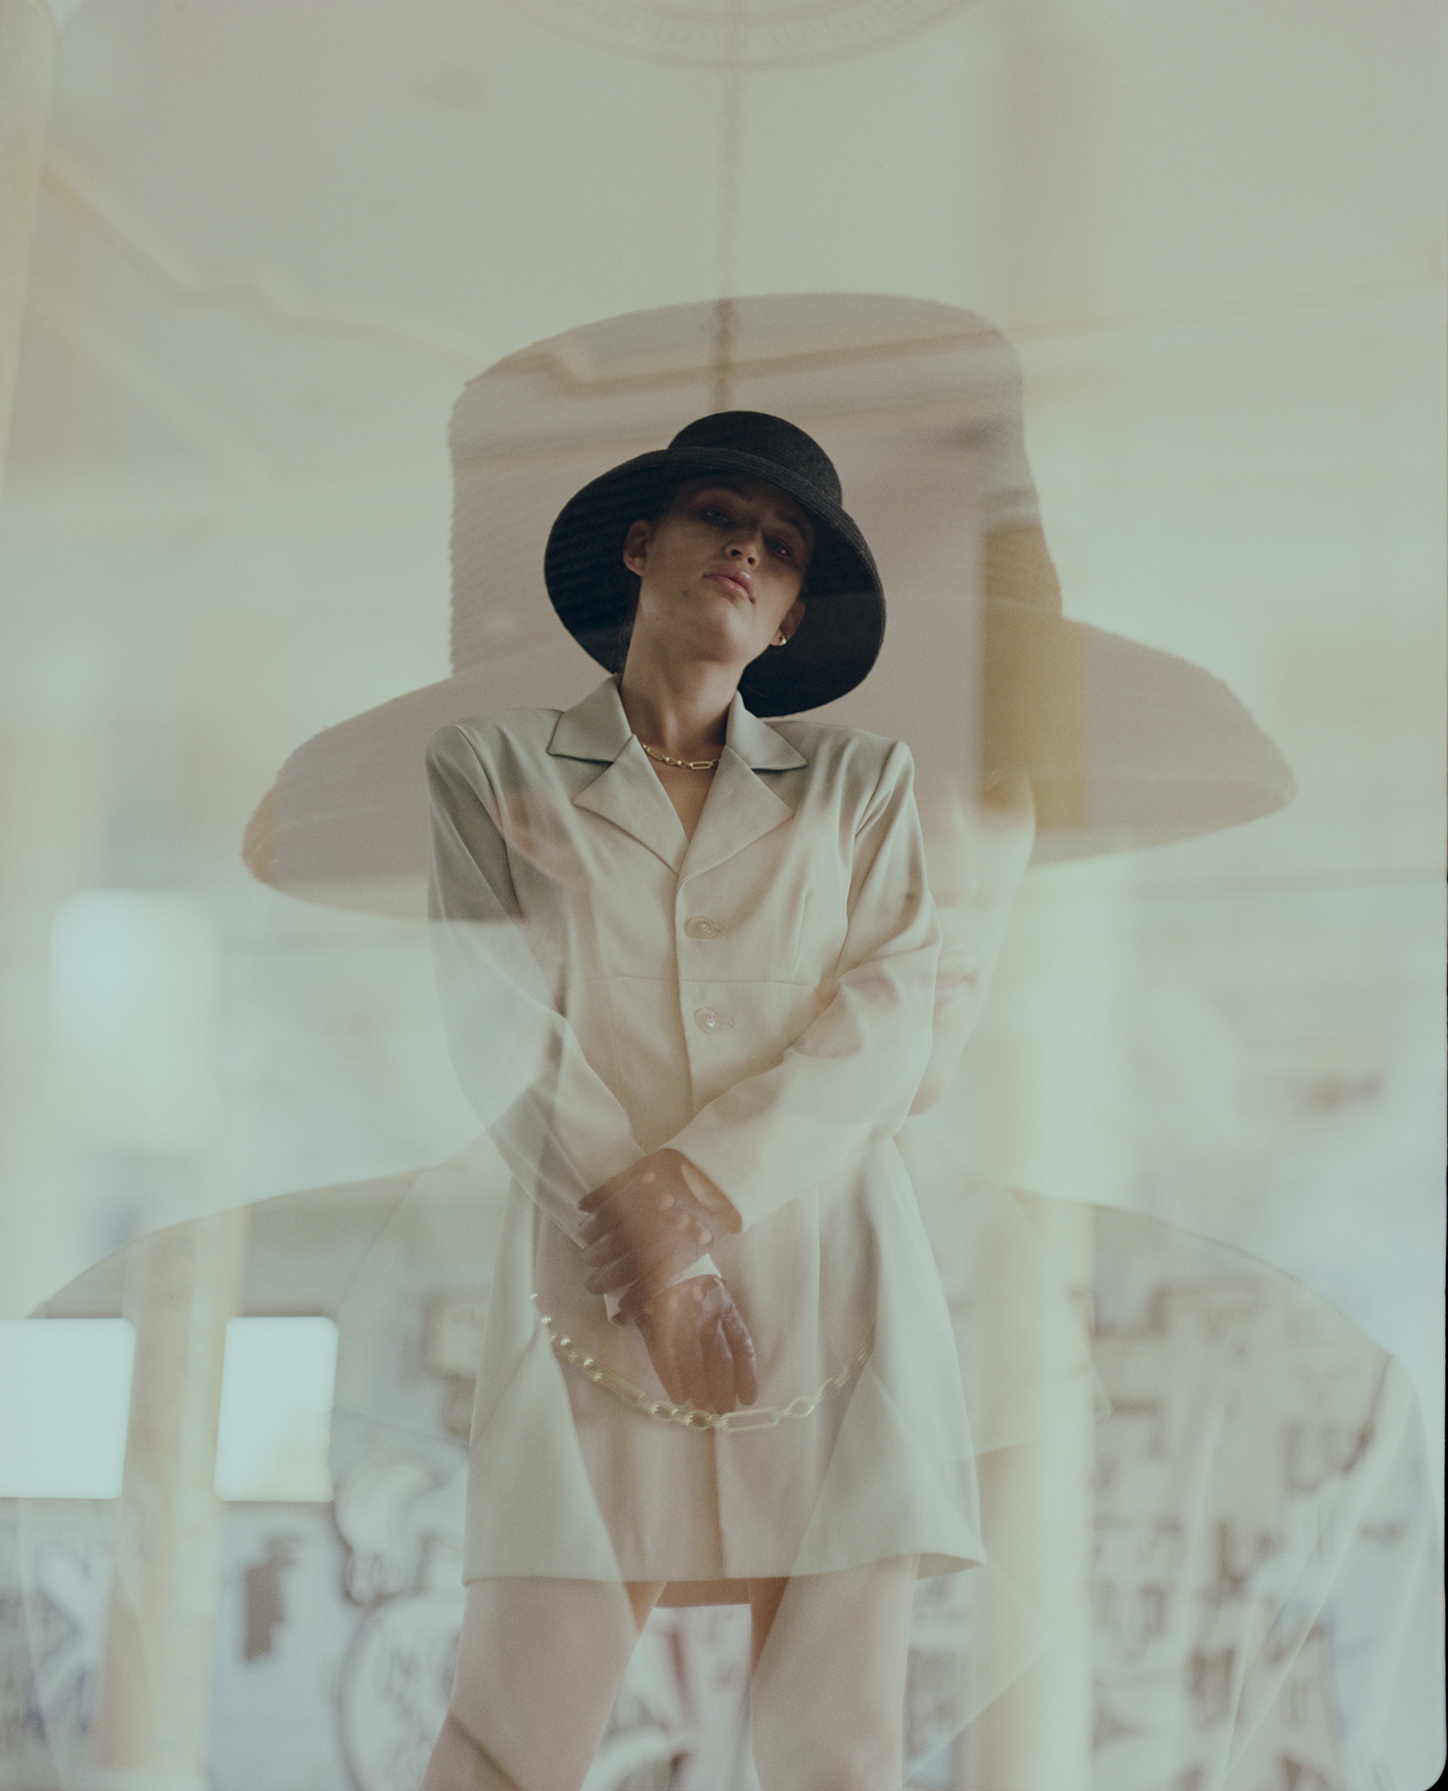 Vintage store photoshoot, medium format portrait in color, double exposure